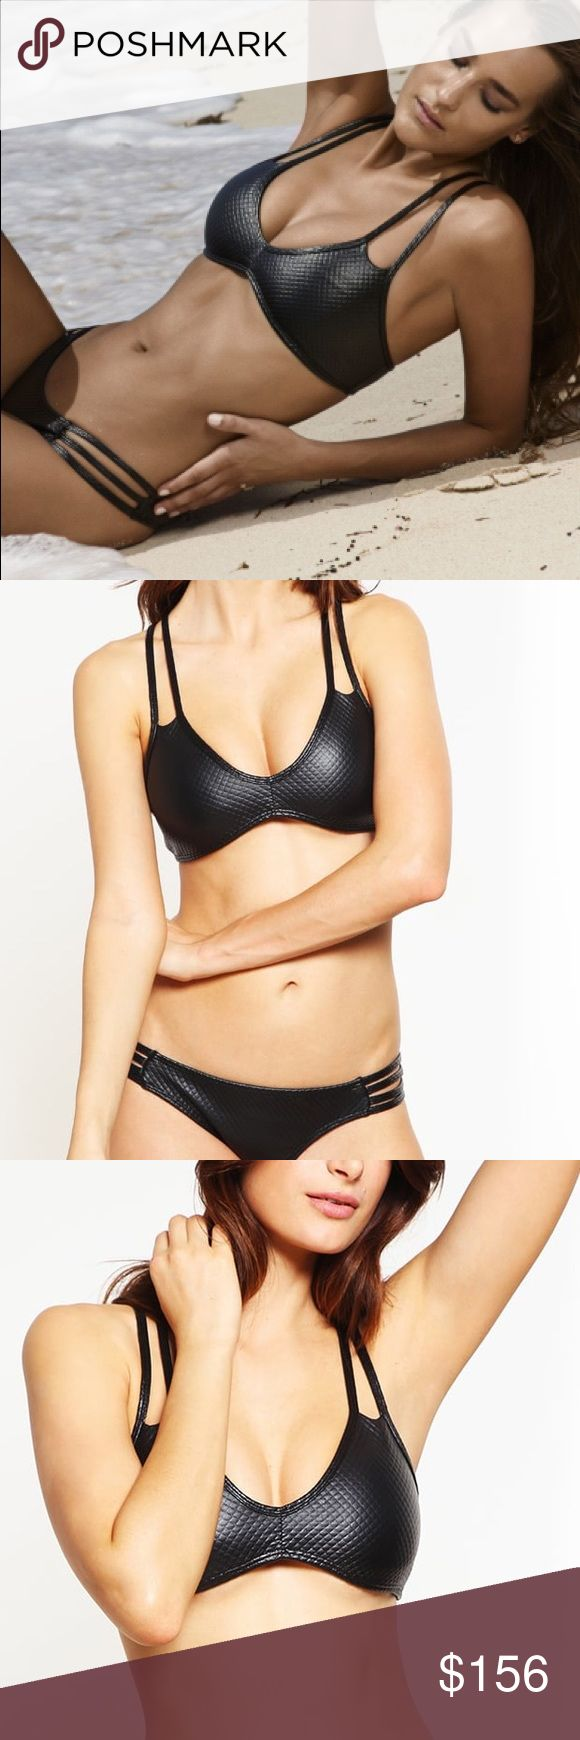 NWT PilyQ Posh Utopia Bikini in Textured Black This PilyQ Posh Utopia Halter Bikini is sexy and stylish!  This bikini has a pullover top that is cinched at the center bust.The bottoms have triple strap detail on the hips and come in a full cut. Cinched seam at the front Double neck straps Crisscross strap detail at back Pull over top (does not tie) No cups Available in full cut that offers full coverage in the back and covers bottom well Triple strap detail at hips Slight ruching at the top…